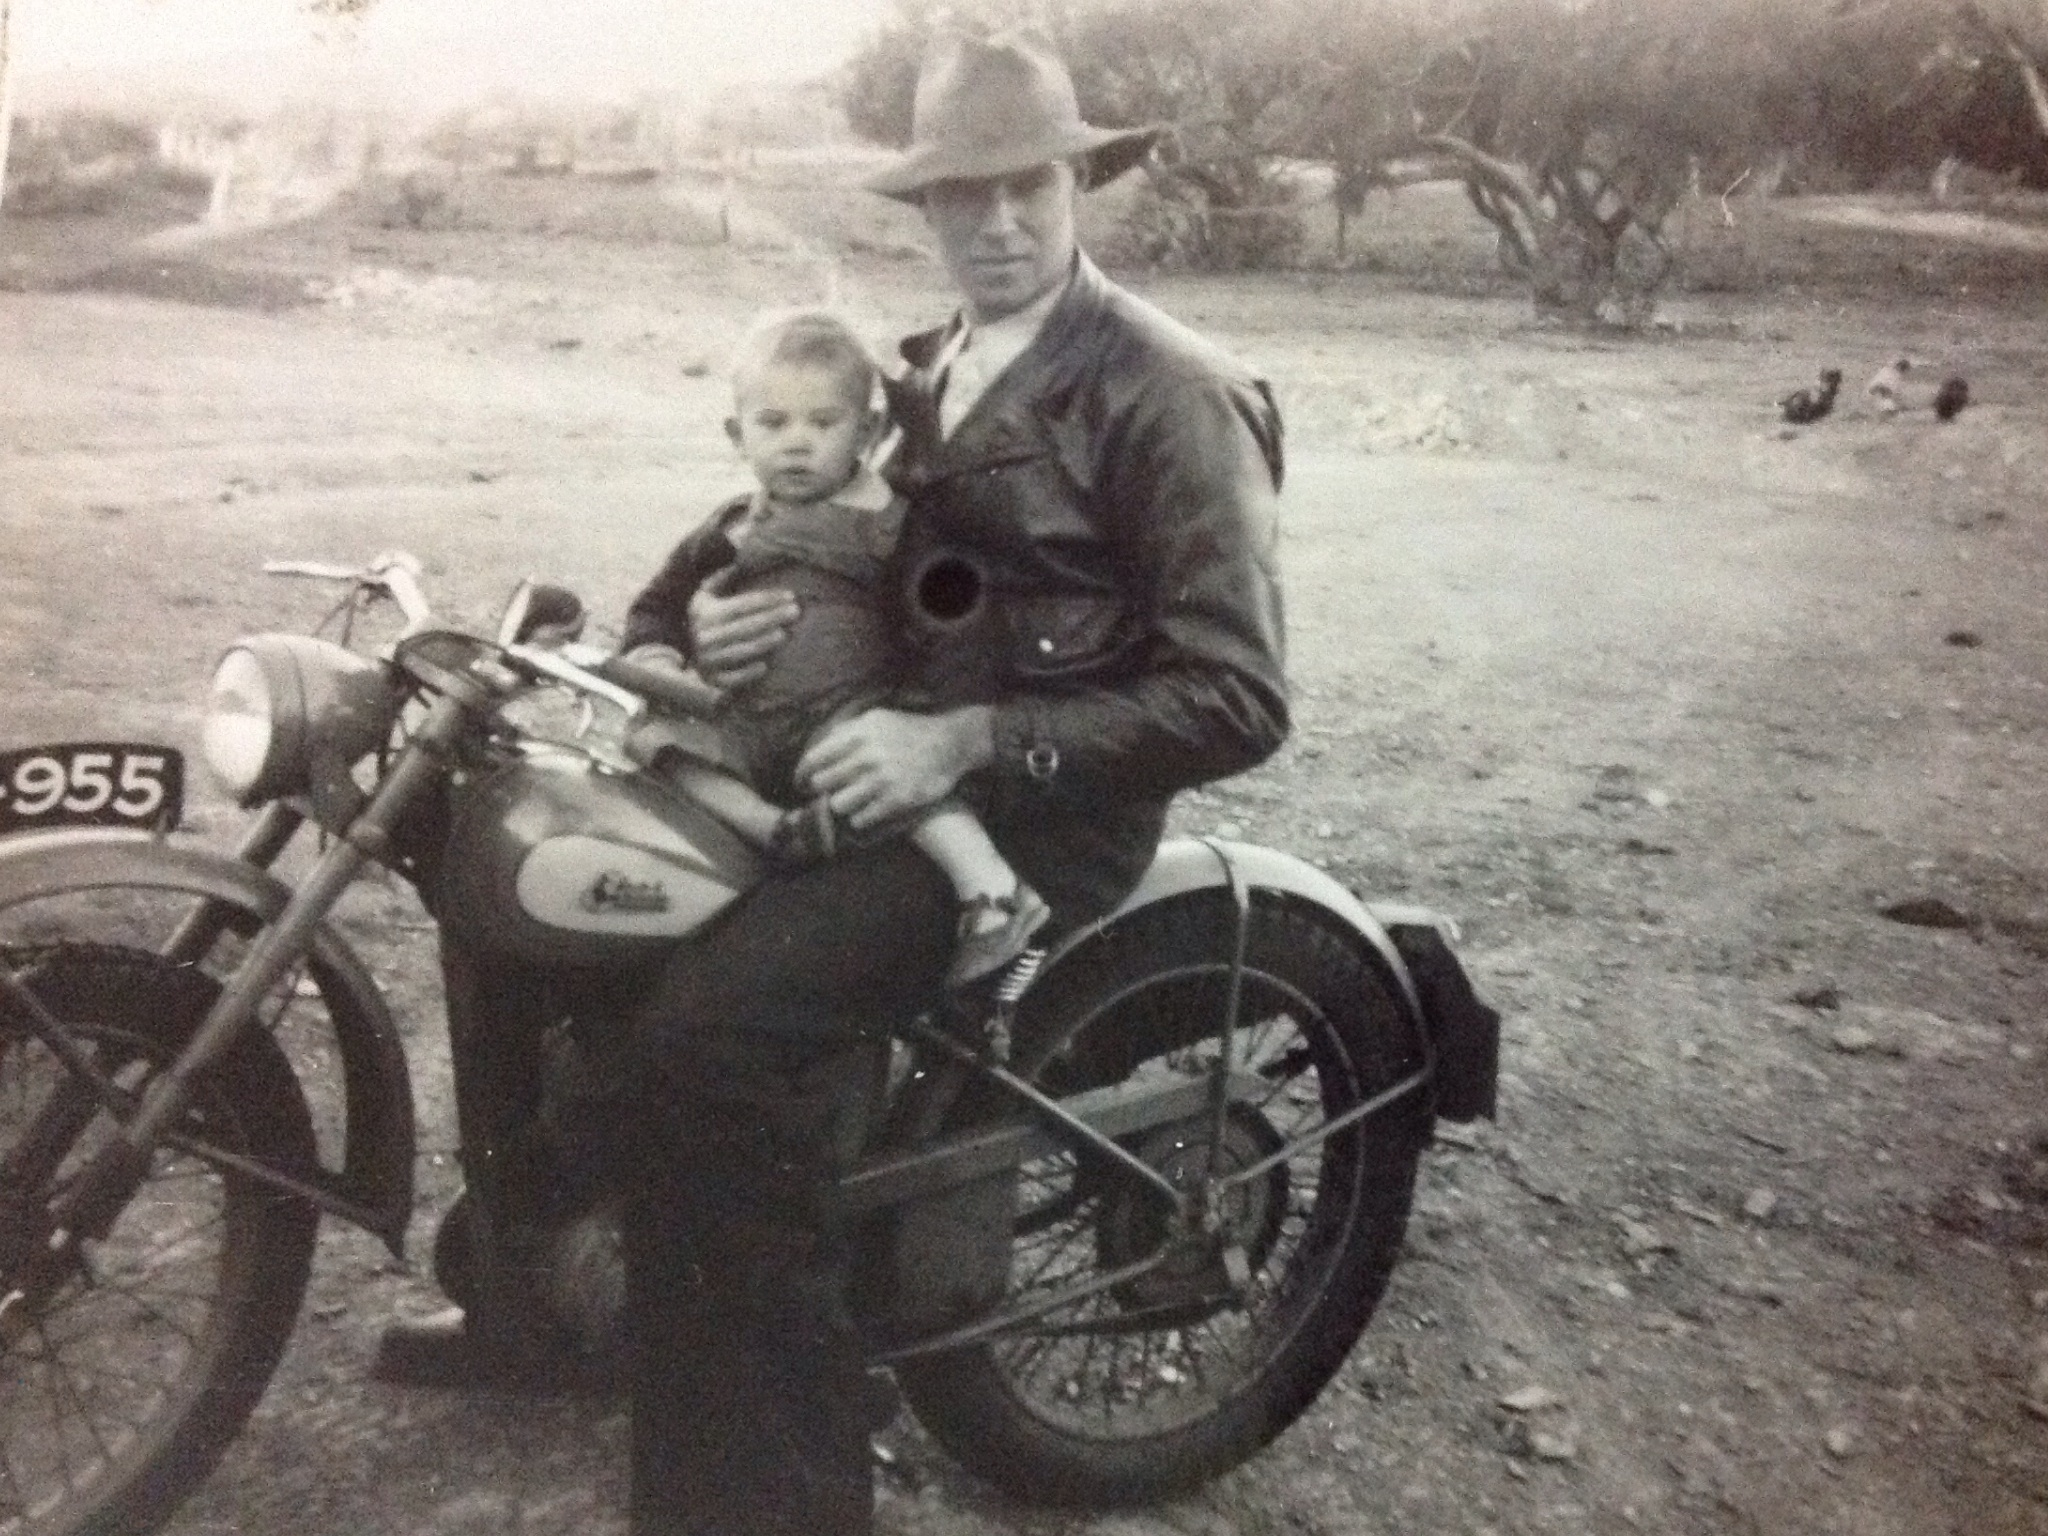 Courtesy of B Thomas our brother in law. Circa 1955